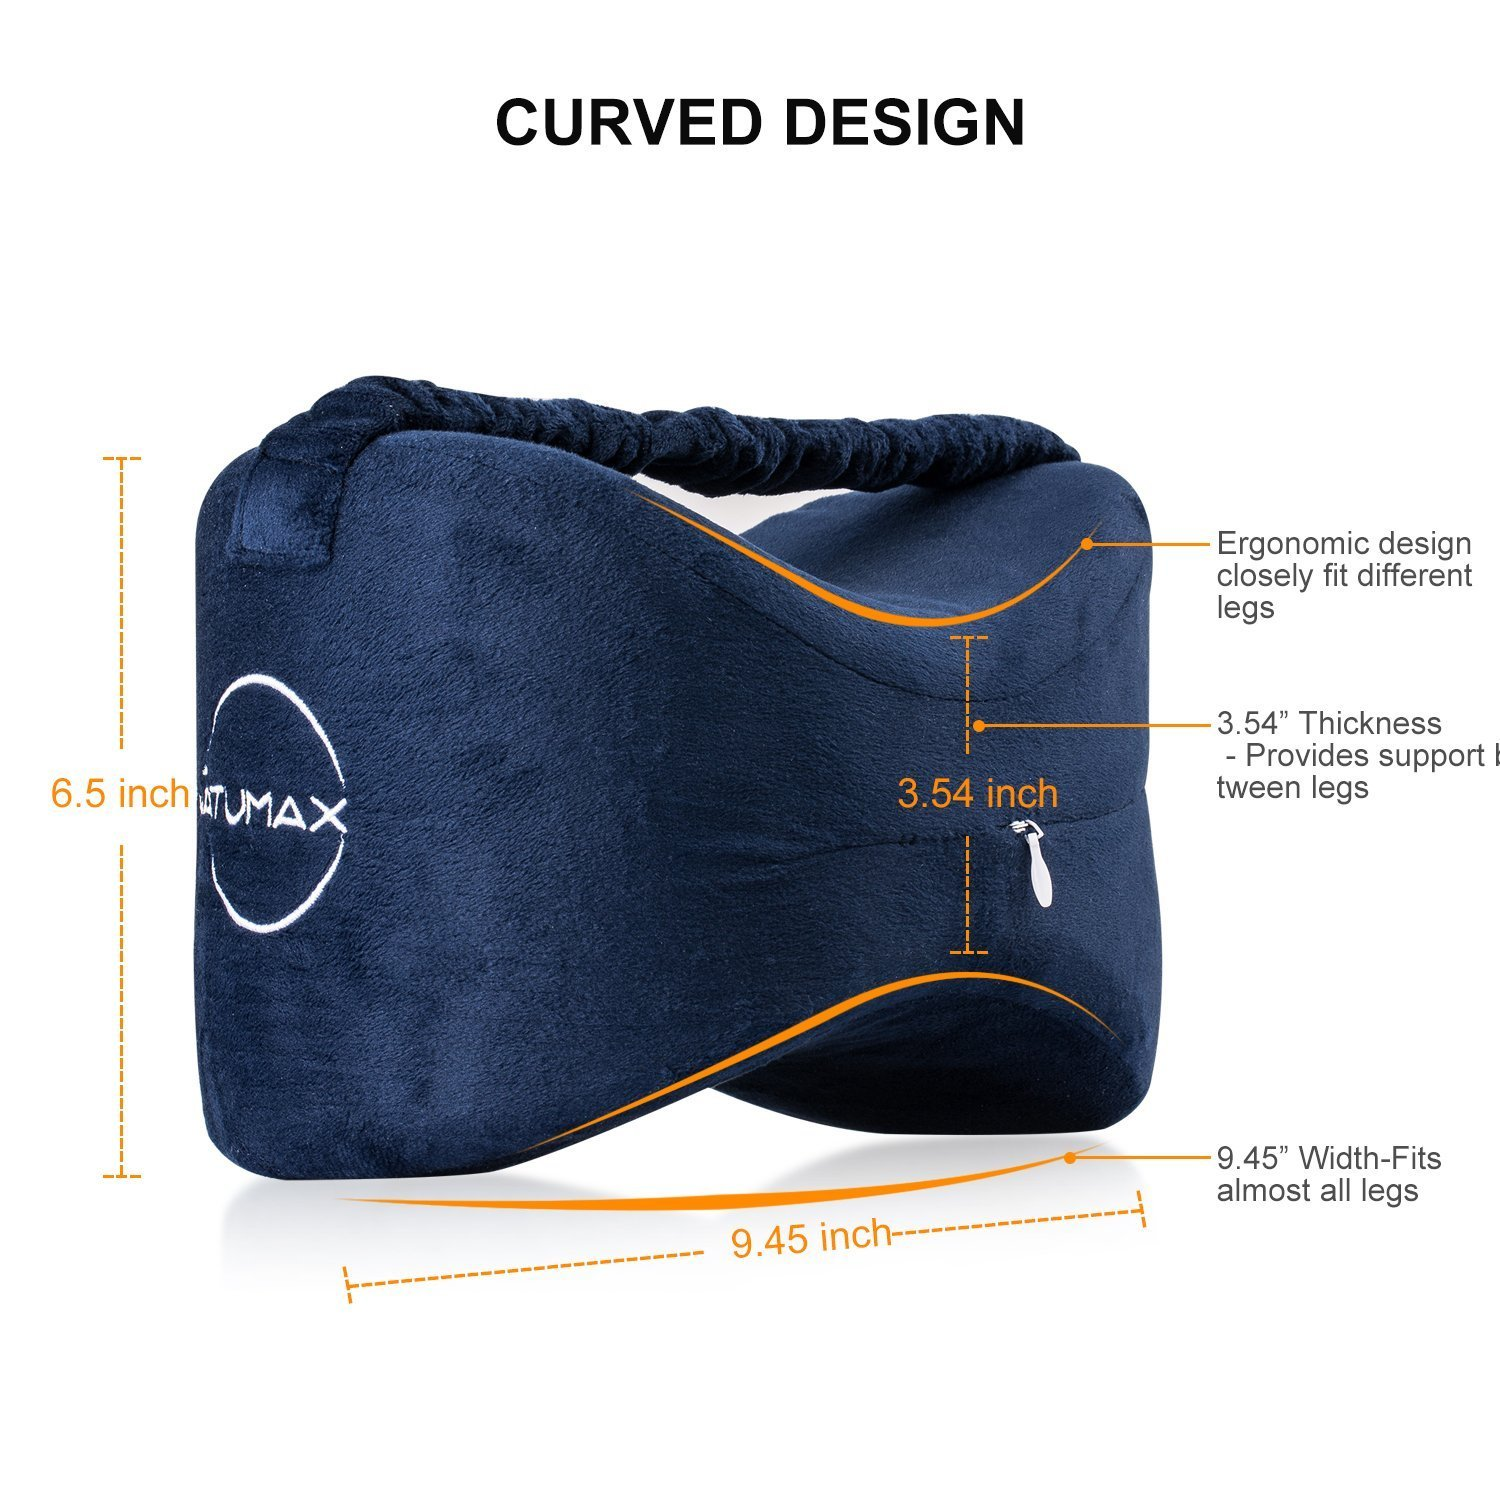 NATUMAX Knee Pillow for Side Sleepers - Sciatica Pain Relief - Back Pain, Leg Pain, Pregnancy, Hip and Joint Pain Memory Foam Leg Pillow with Washable Cover + Free Sleep Mask and Ear Plugs by NATUMAX (Image #3)